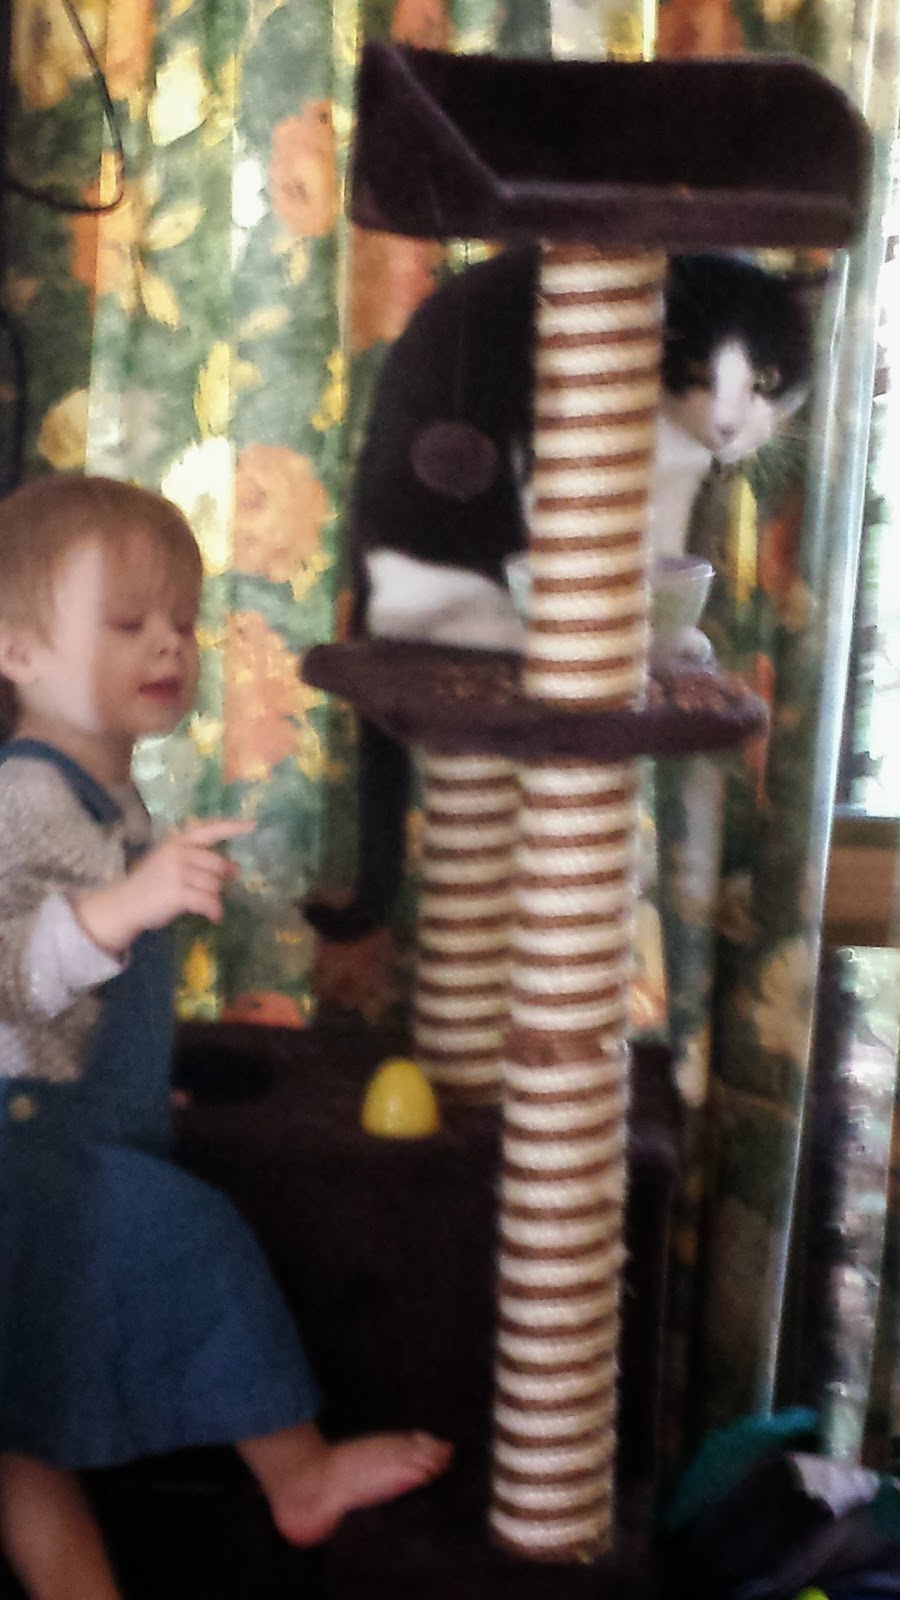 Image Mr Bumpy in cat tower, baby Joey starting to climb tower.